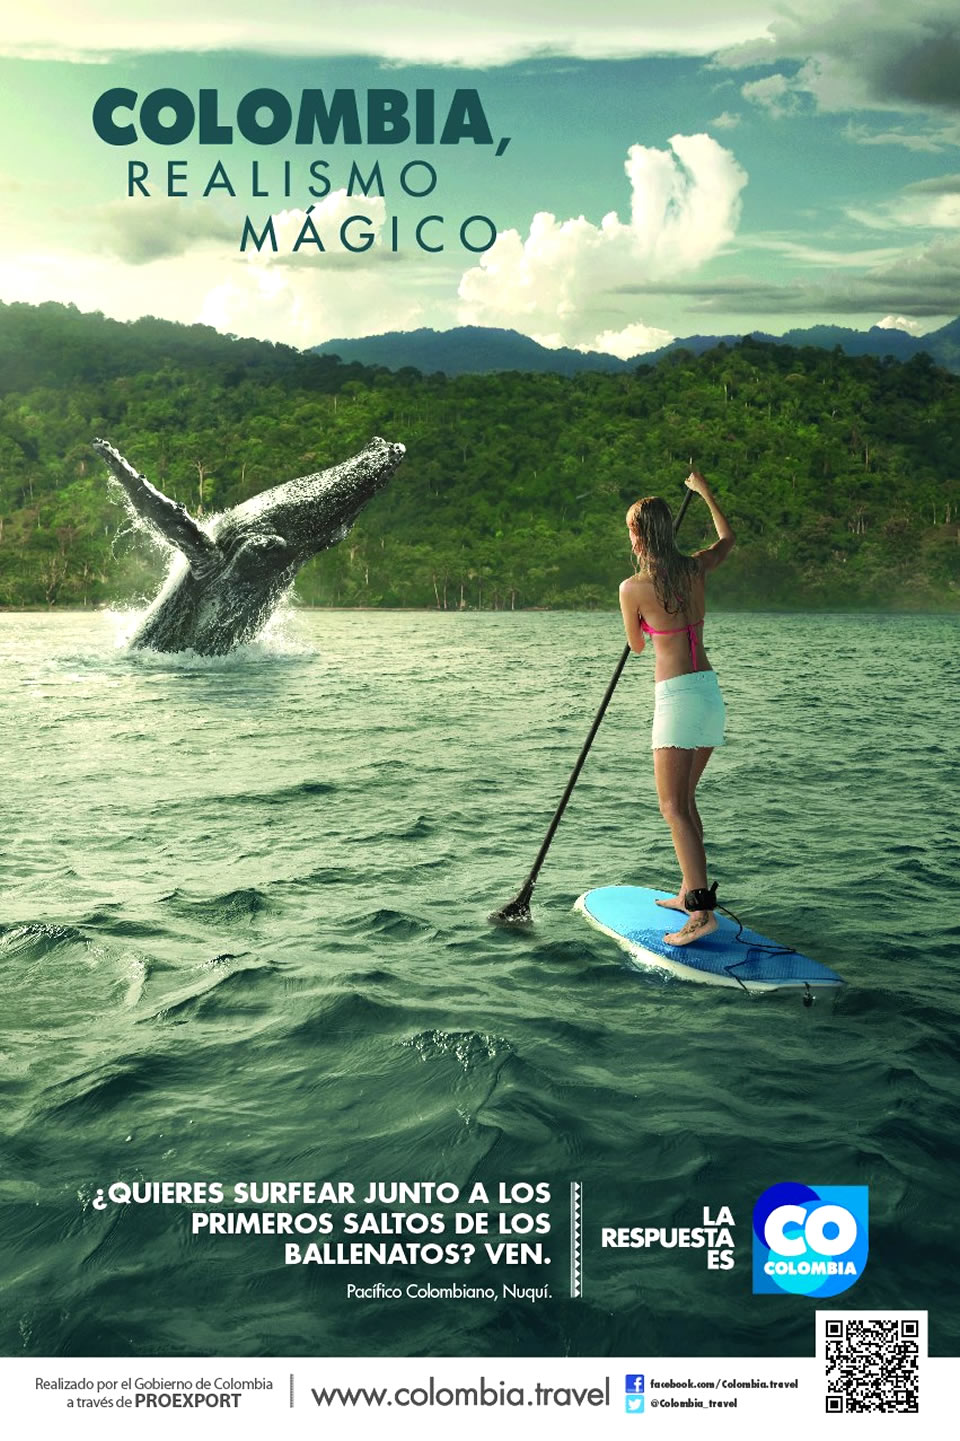 Pacifico Colombiano Tourism Advertisement Poster of Colombia Magical Realism